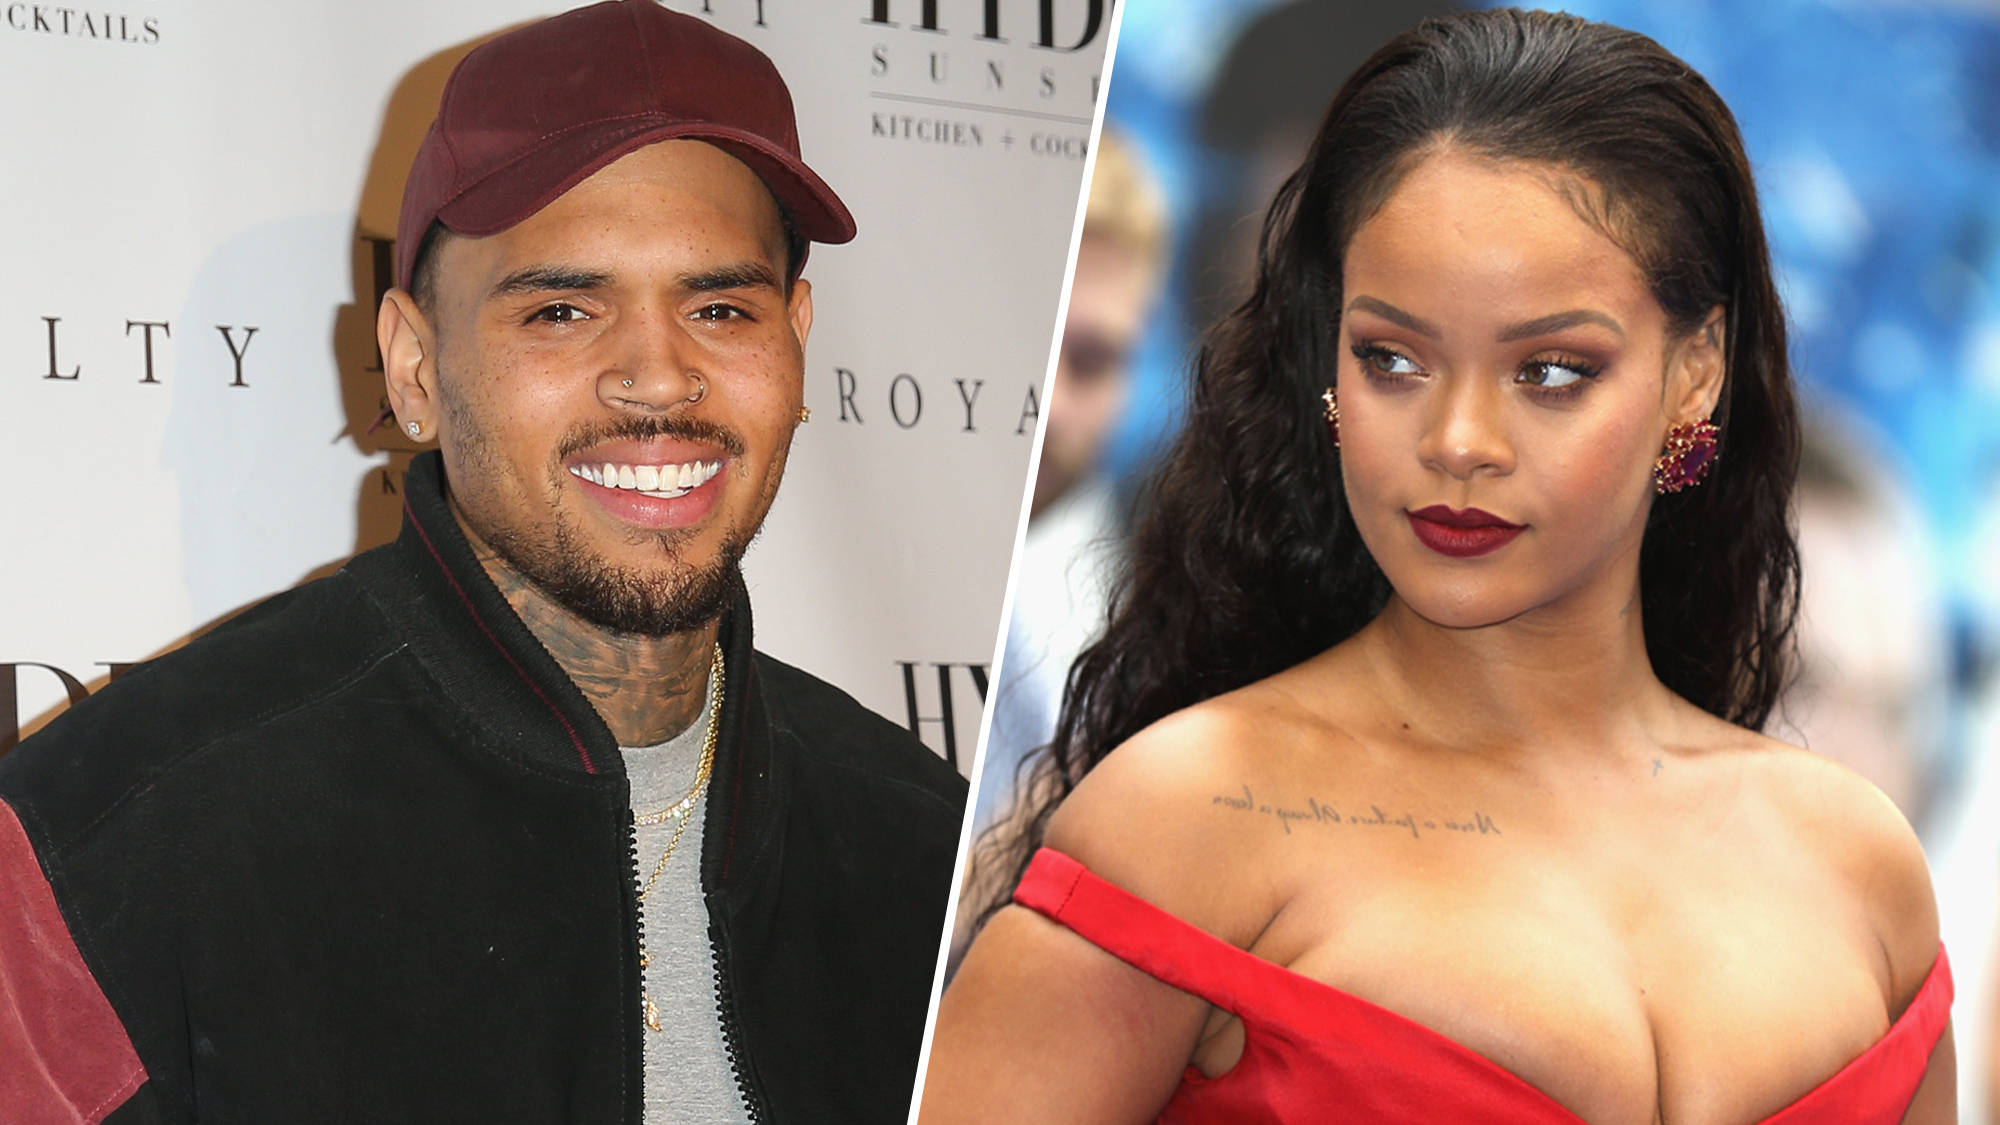 chris-brown-heres-how-he-supposedly-feels-about-rihanna-and-hassan-jameel-still-being-together